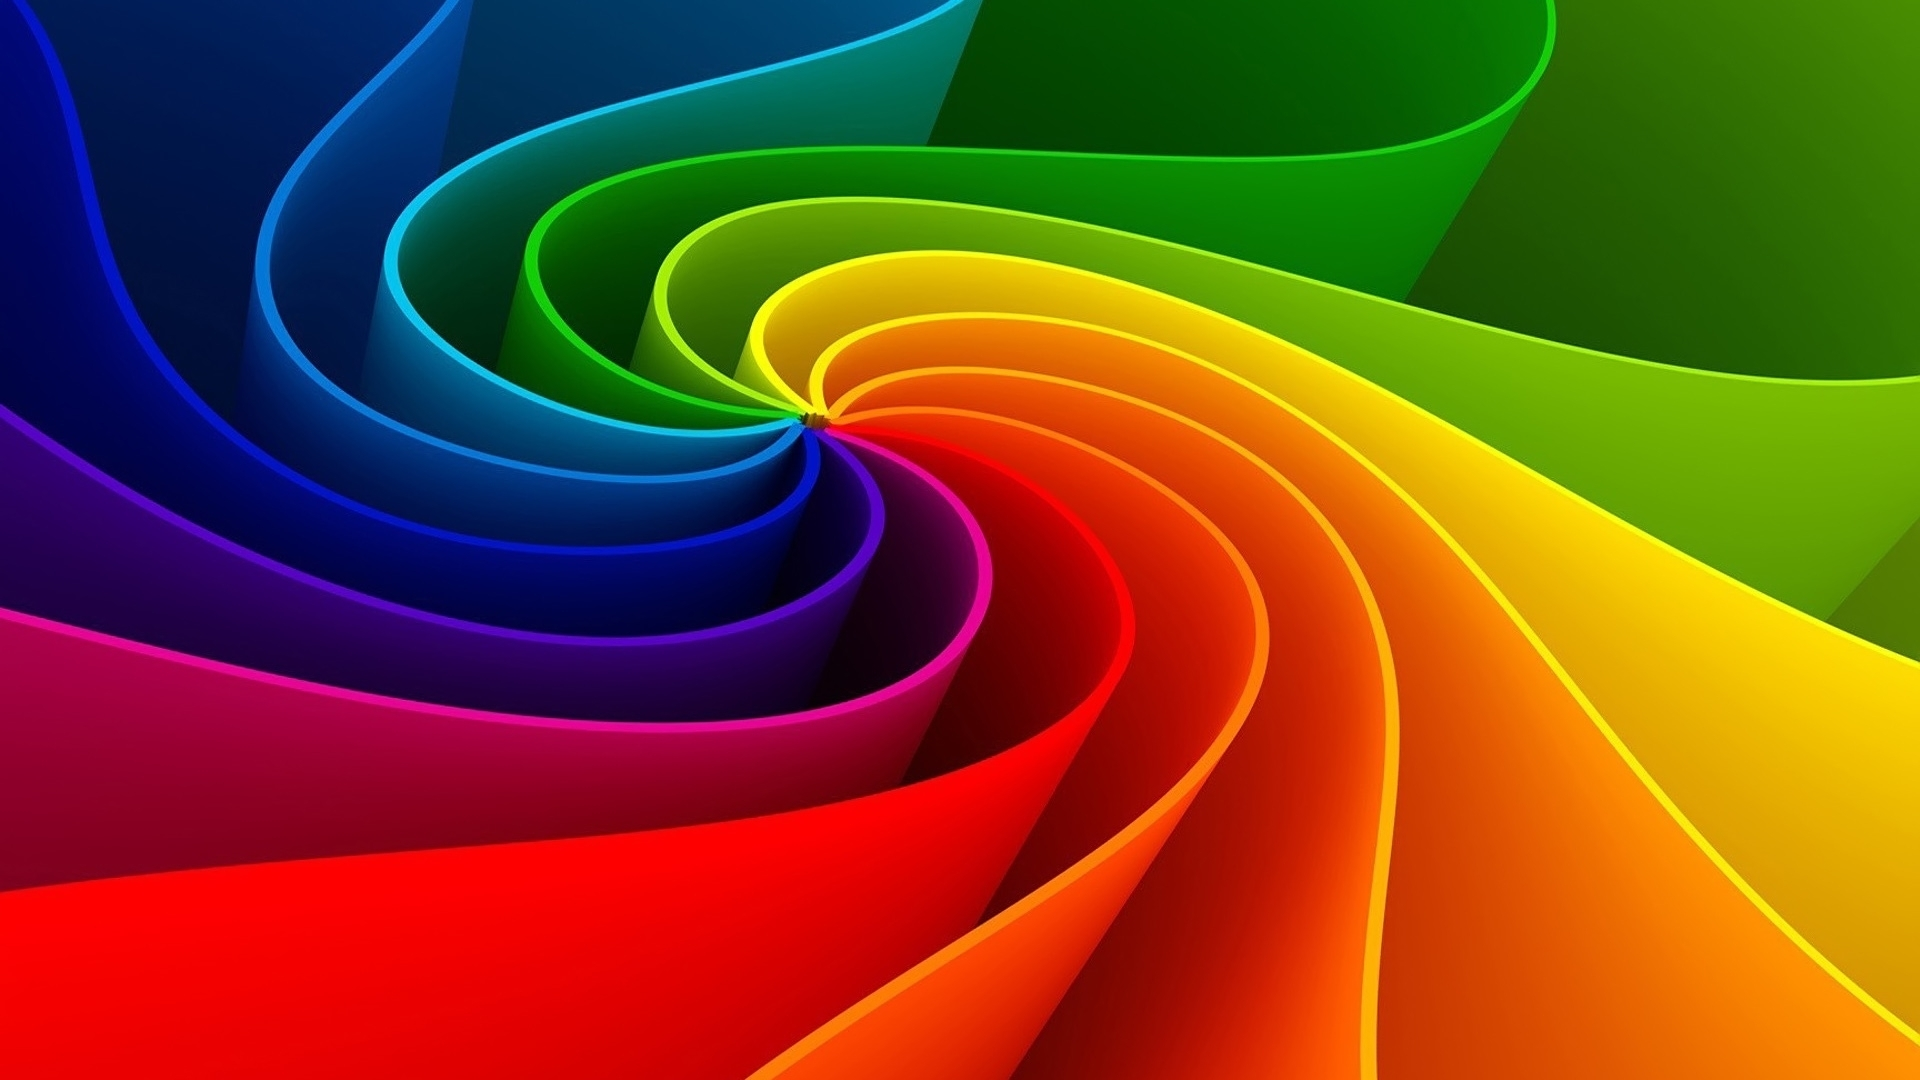 rainbow illustration wallpaper 1920x1080 - photo #35